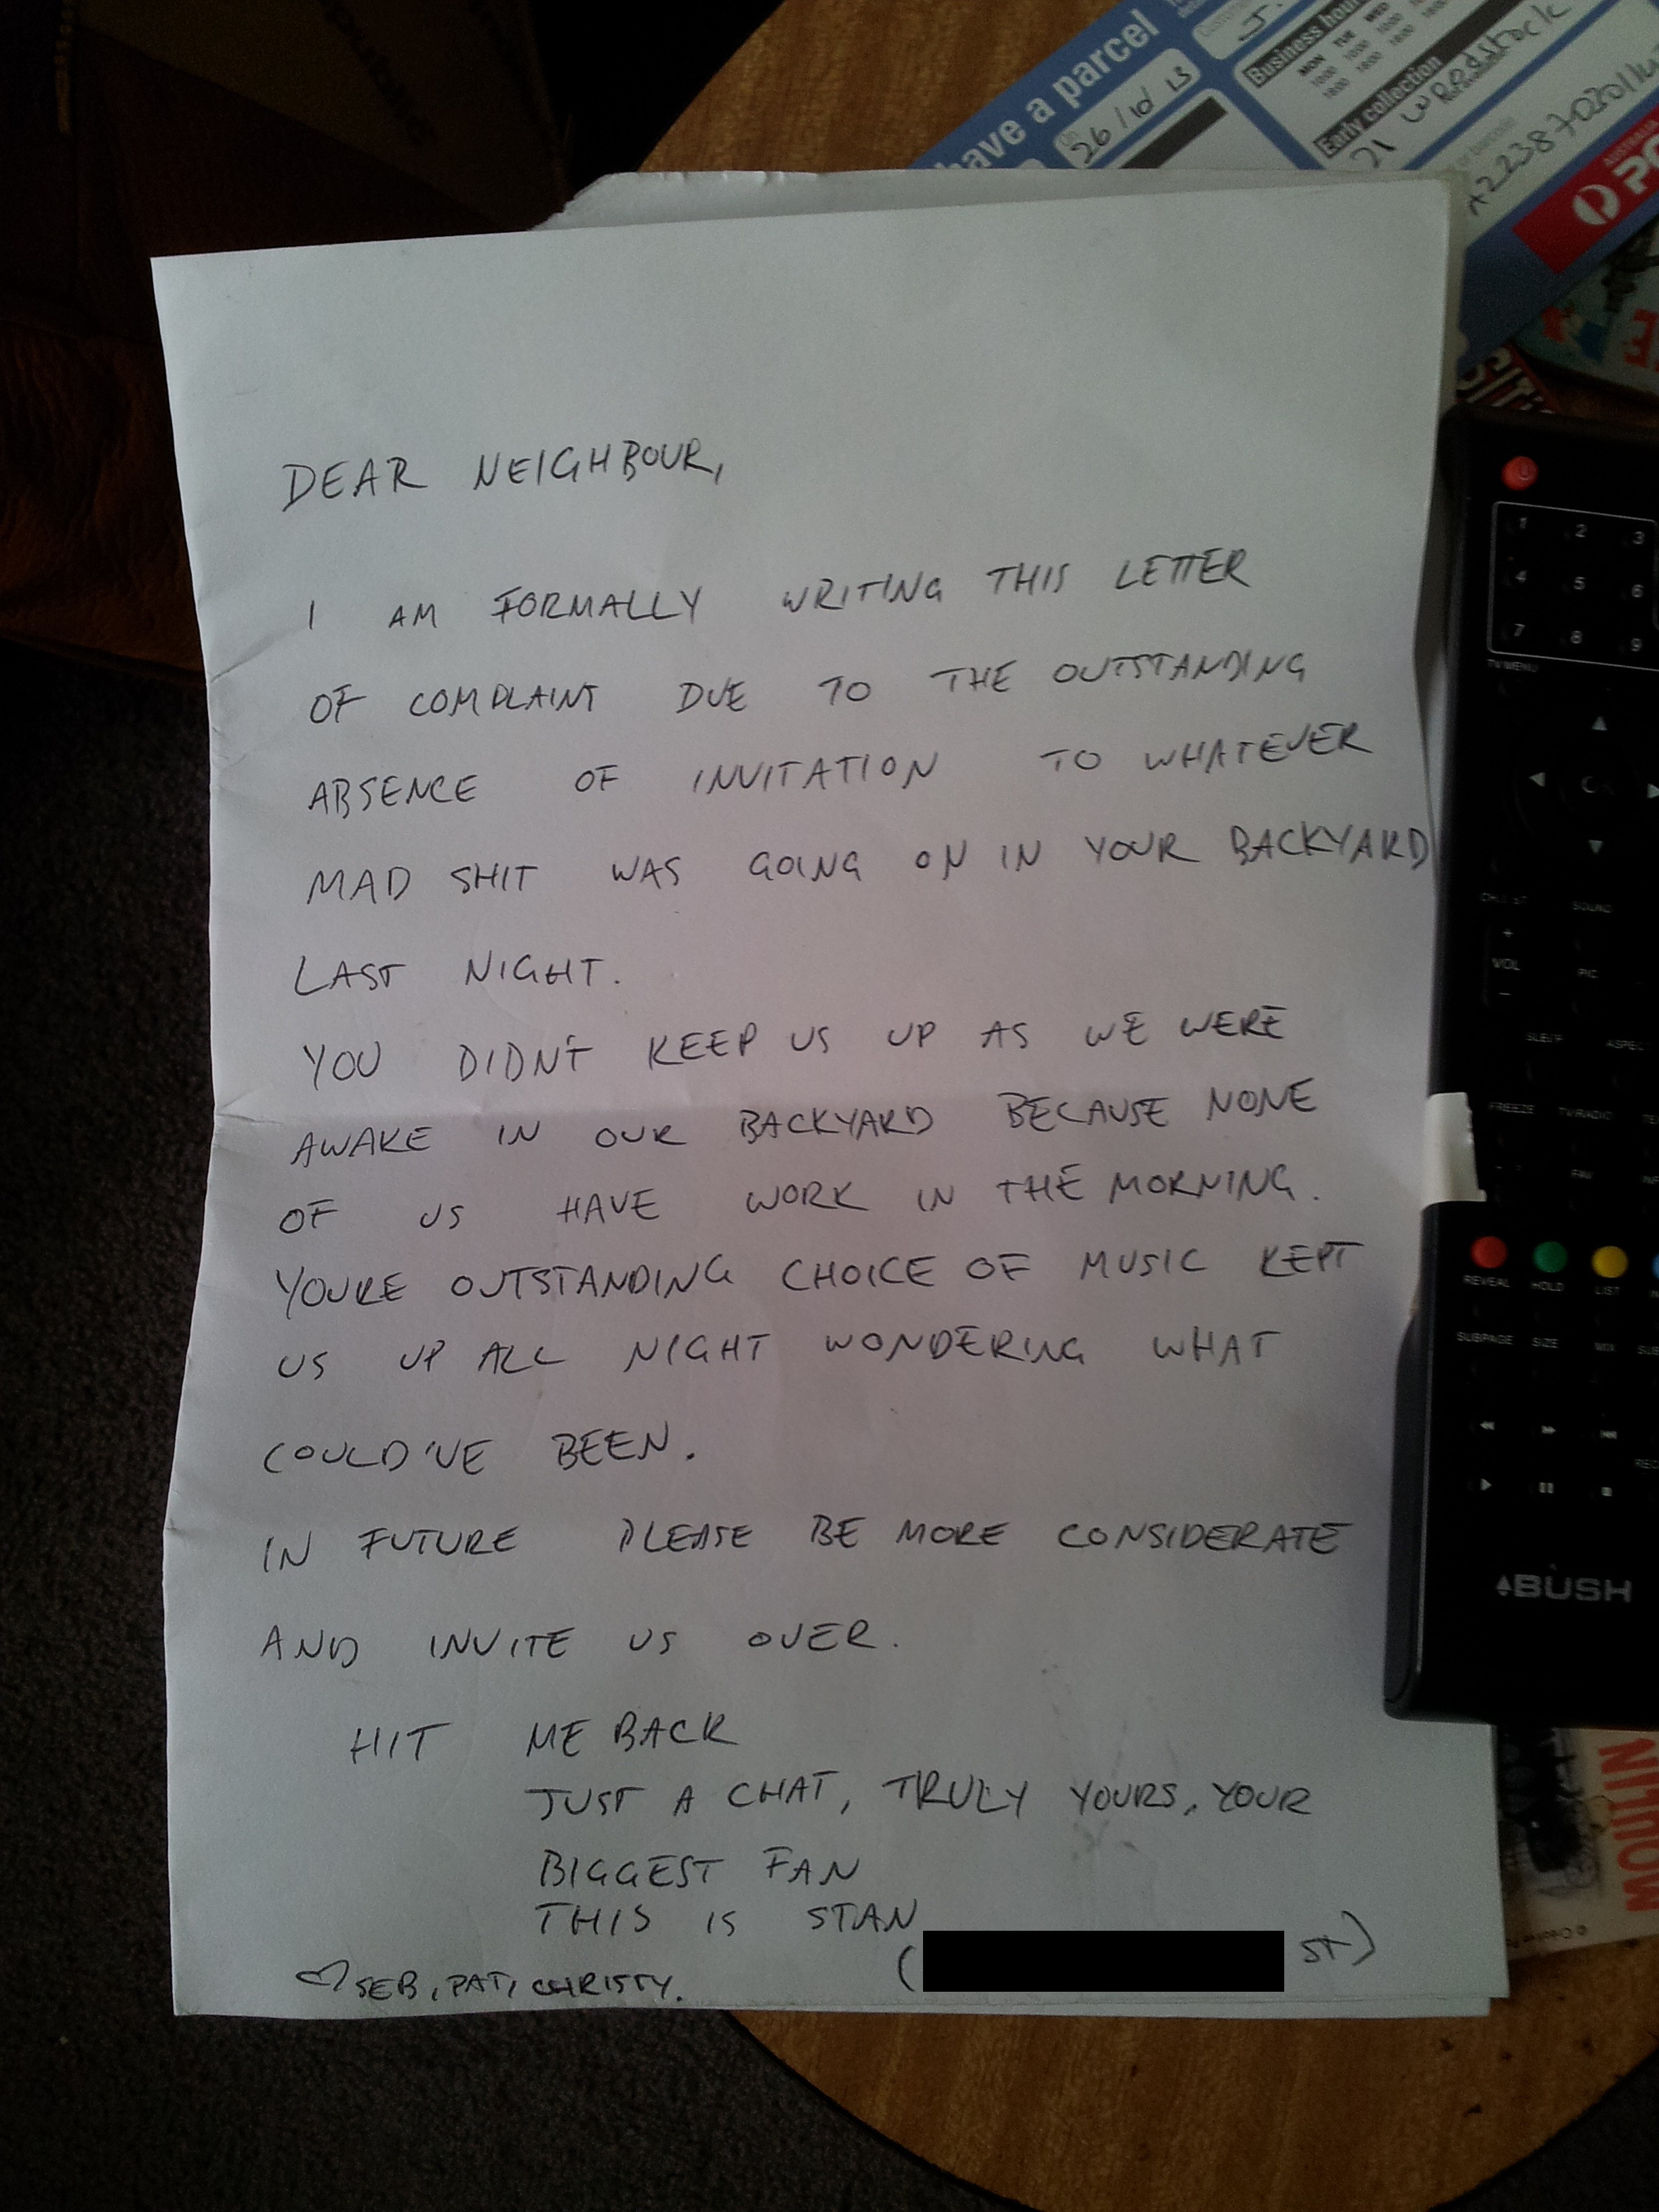 Someone threw a party blasting loud music late at night. Their neighbor complained in the coolest possible way.